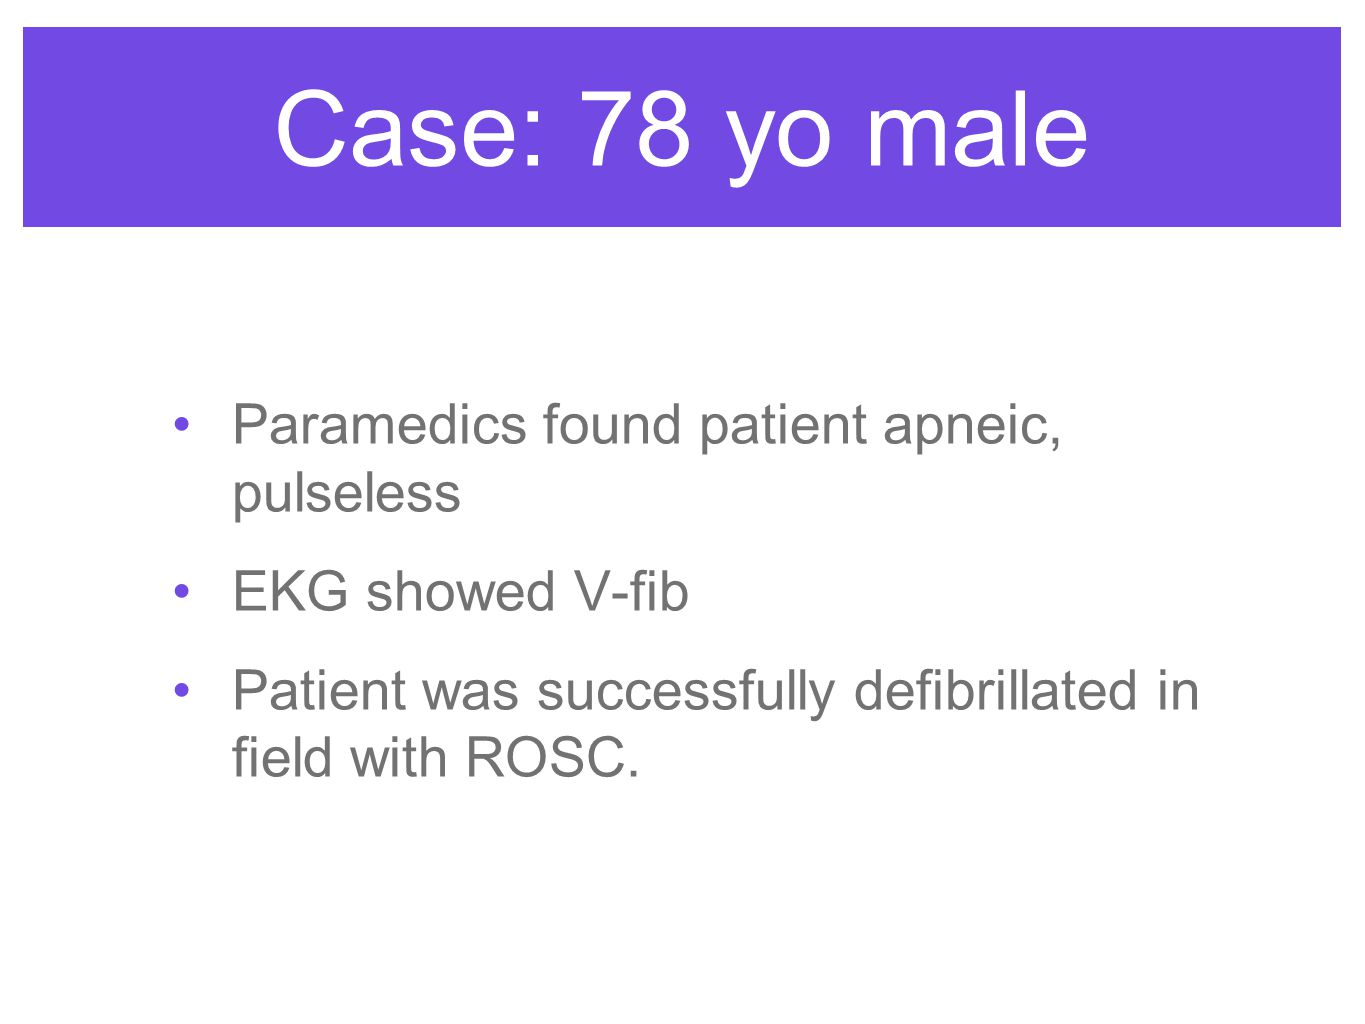 Case: 78 yo male Paramedics found patient apneic, pulseless